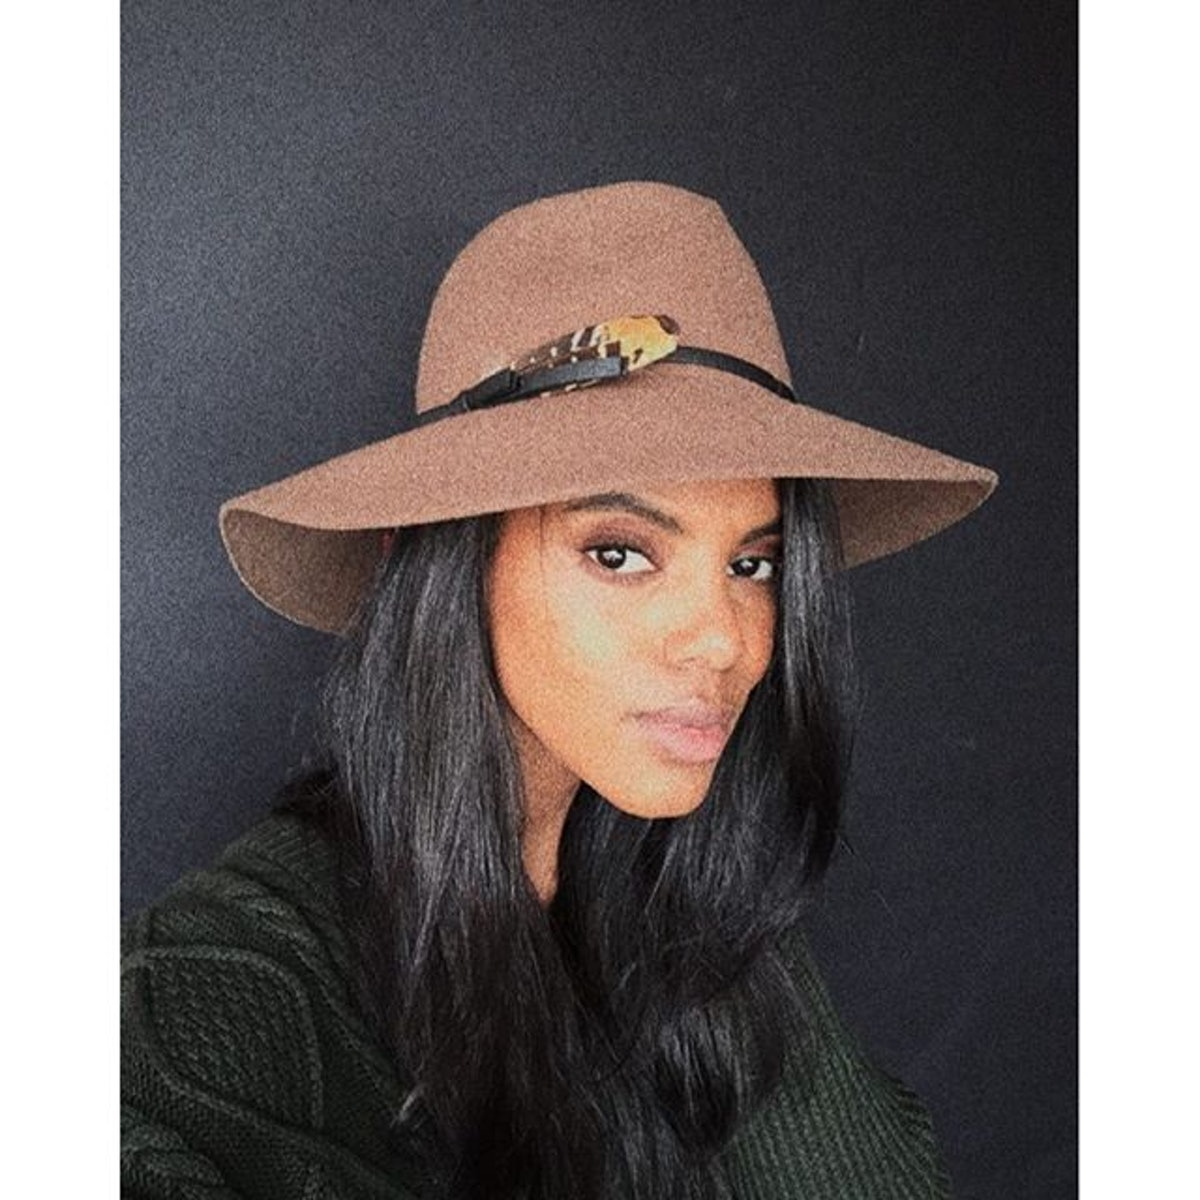 gracemahary